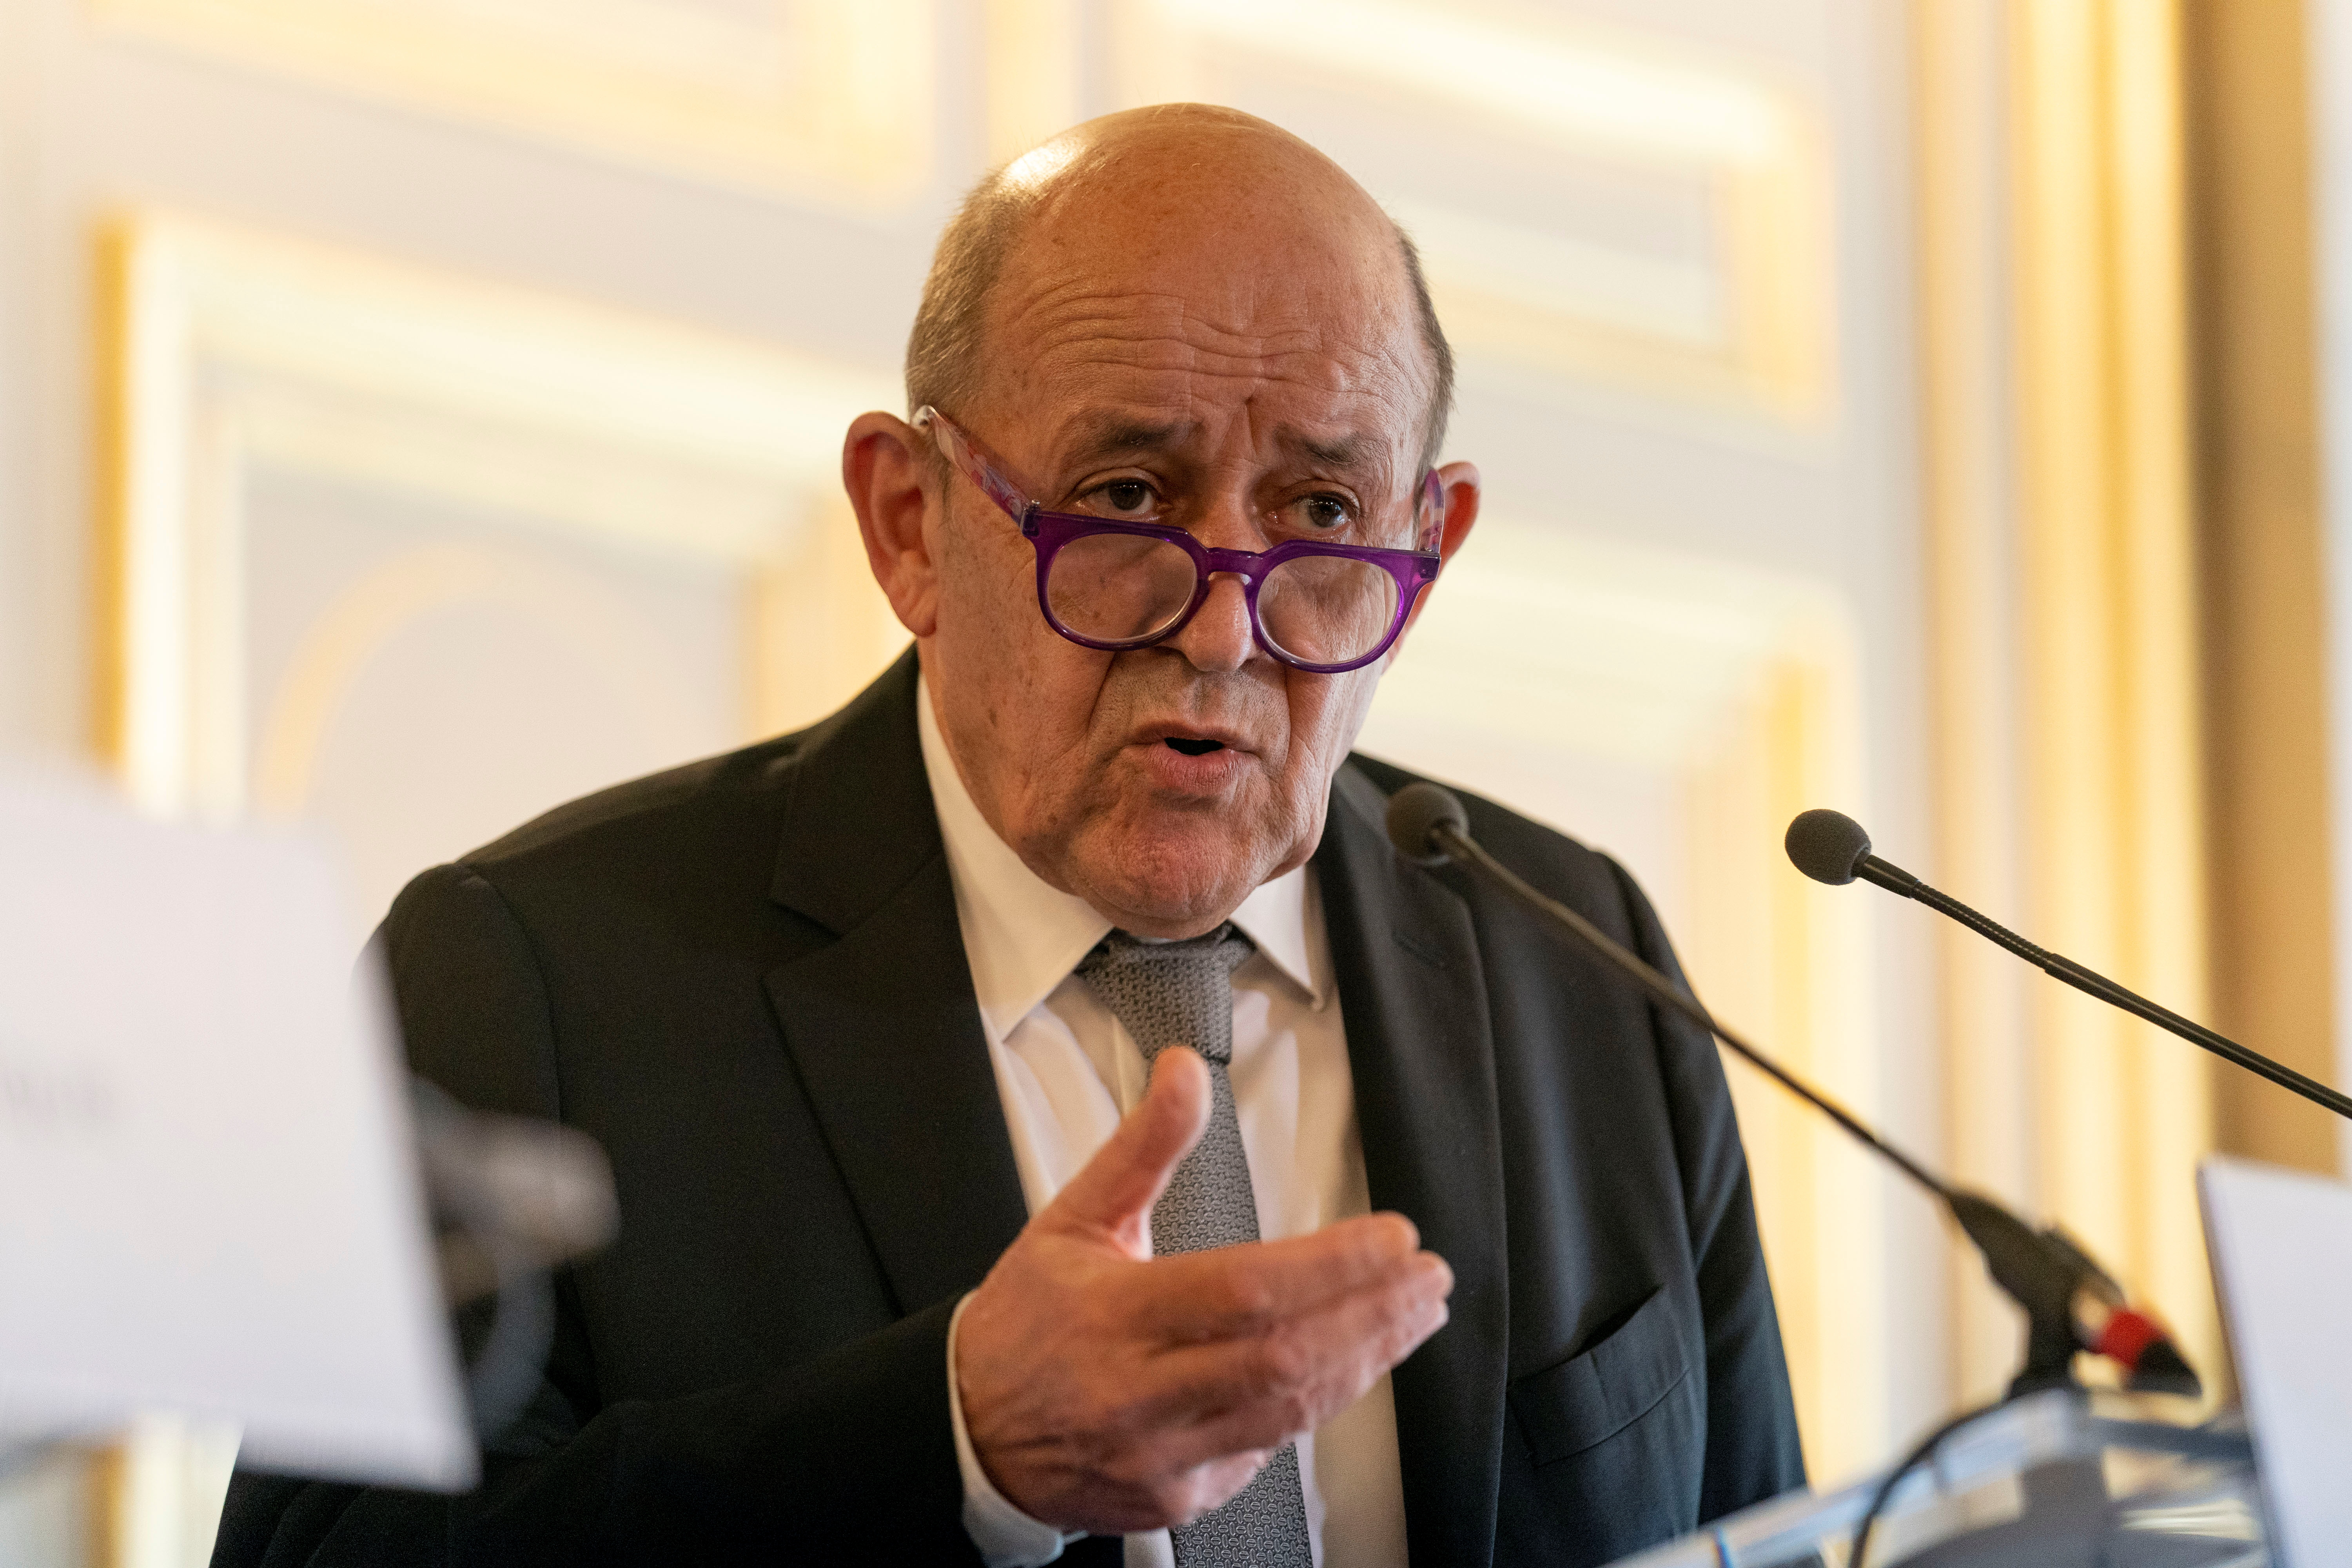 French Foreign Affairs Minister Jean-Yves Le Drian speaks during a news conference with U.S. Secretary of State Antony Blinken at the French Ministry of Foreign Affairs in Paris, France, June 25, 2021. Andrew Harnik/Pool via REUTERS